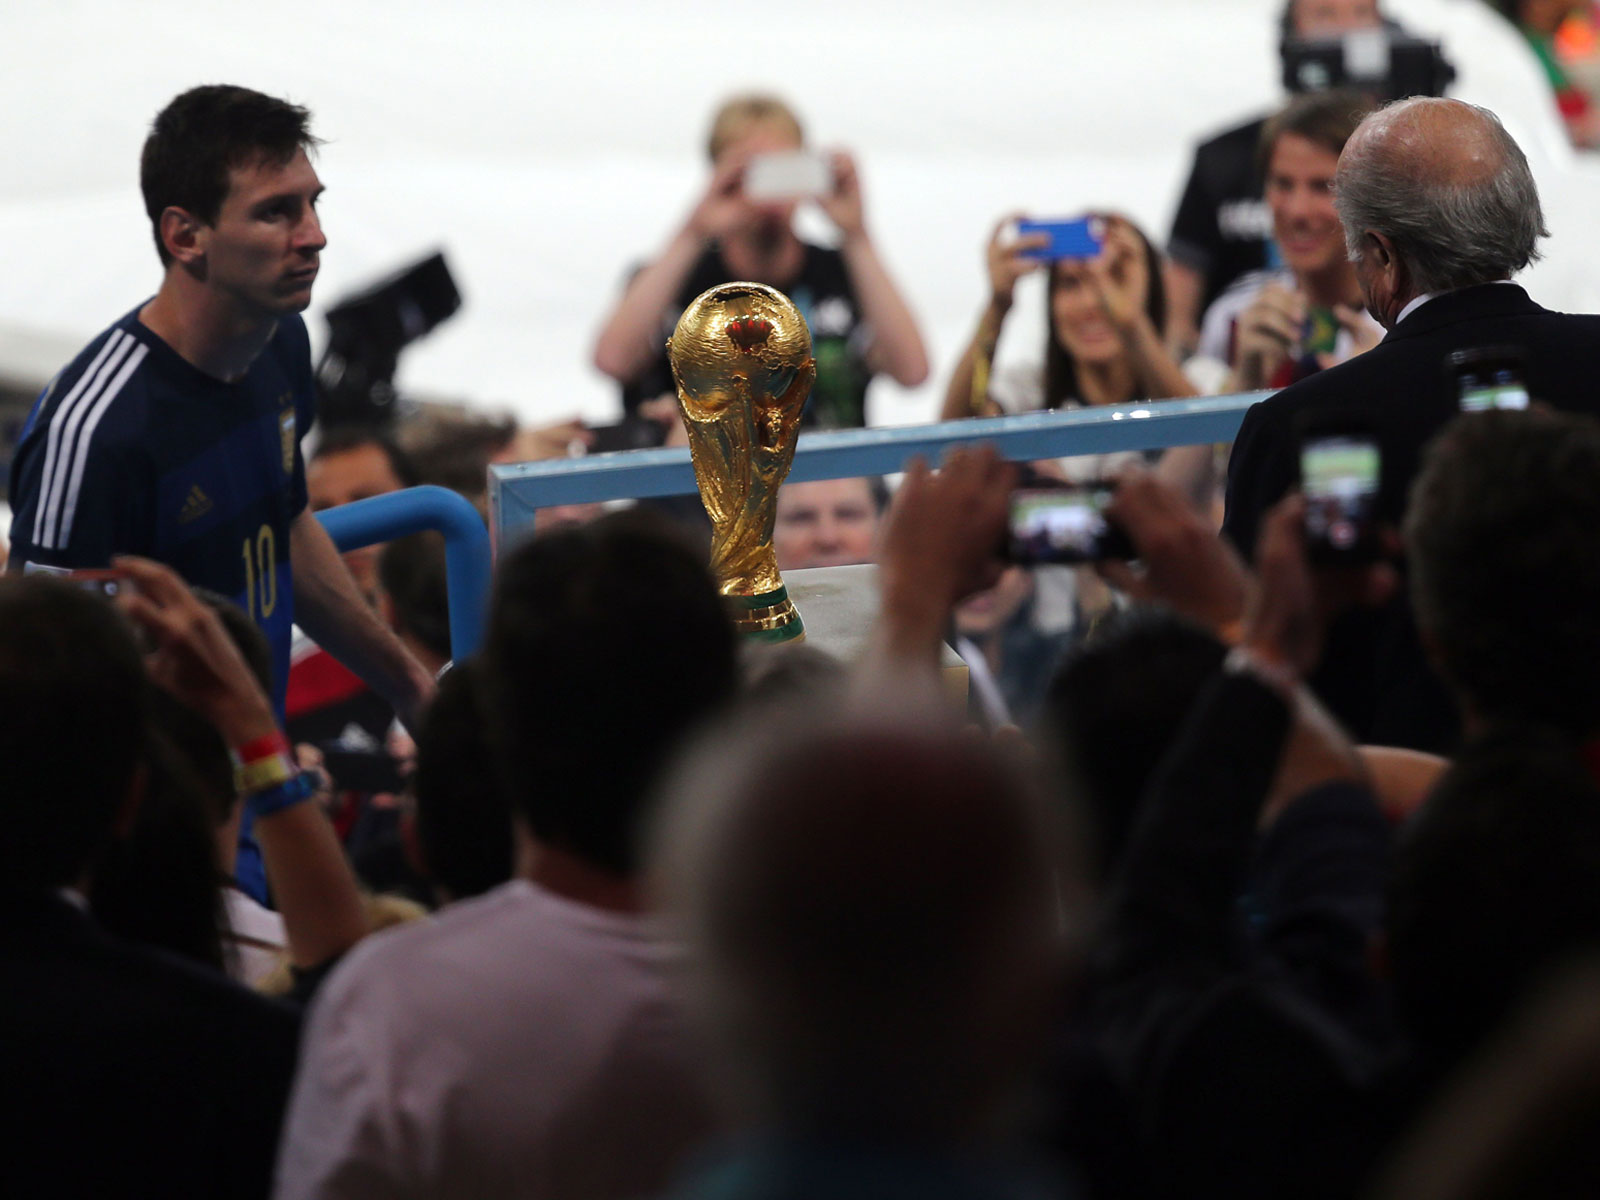 Lionel Messi came close to winning the 2014 World Cup with Argentina